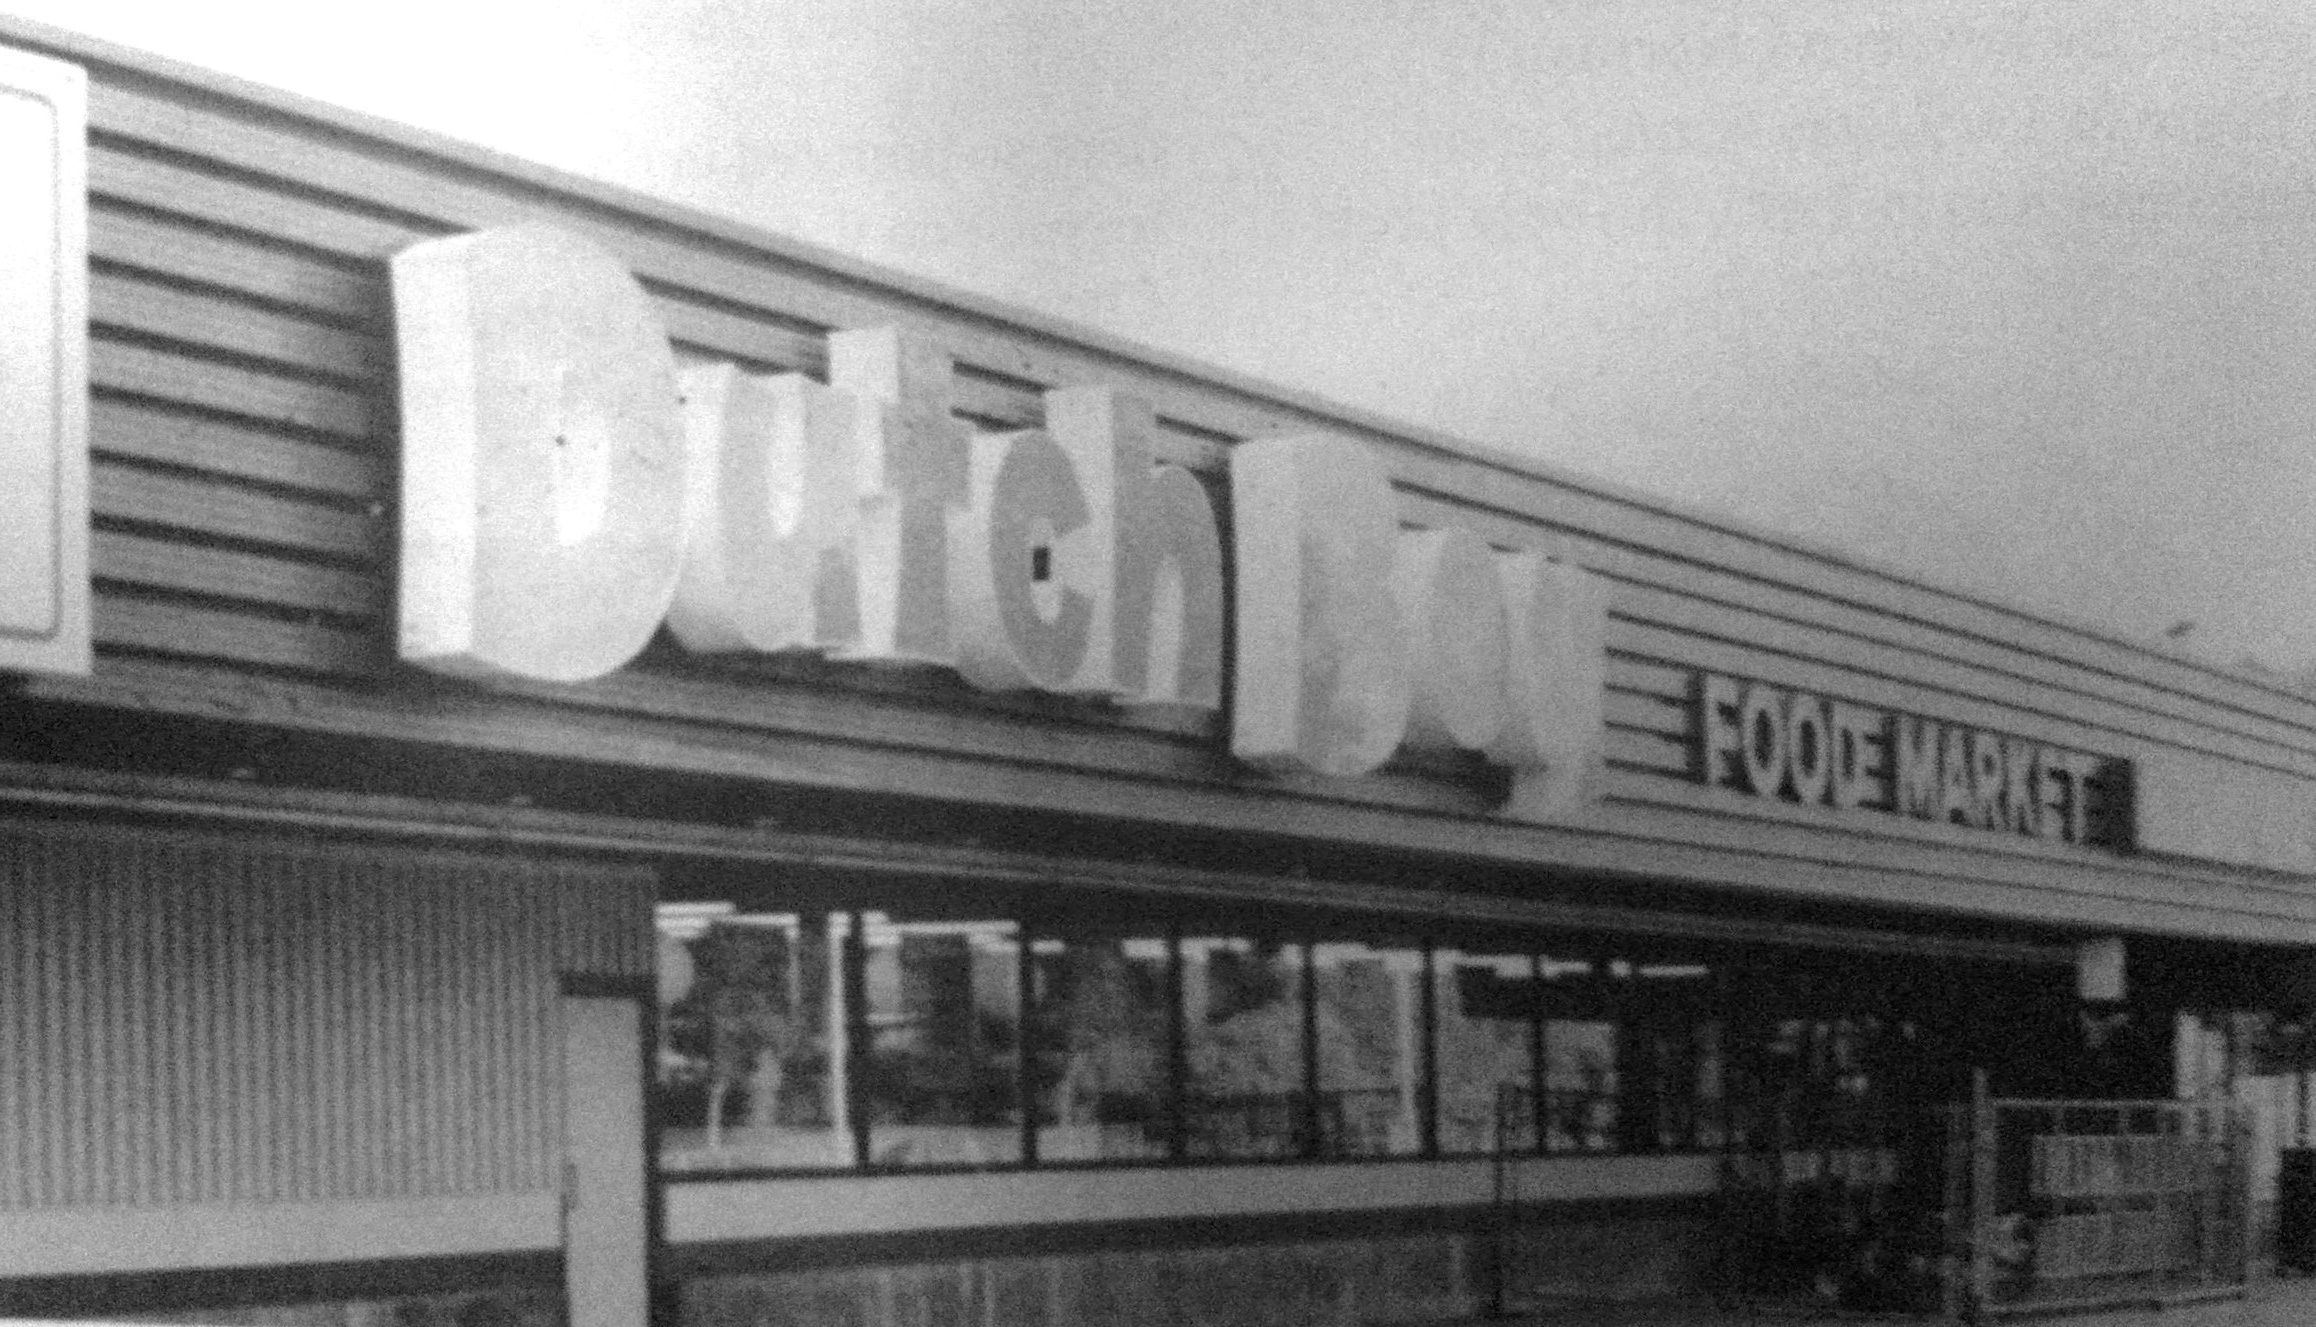 stores in kitchener waterloo ontario dutch boy food market on the corner of belmont avenue and